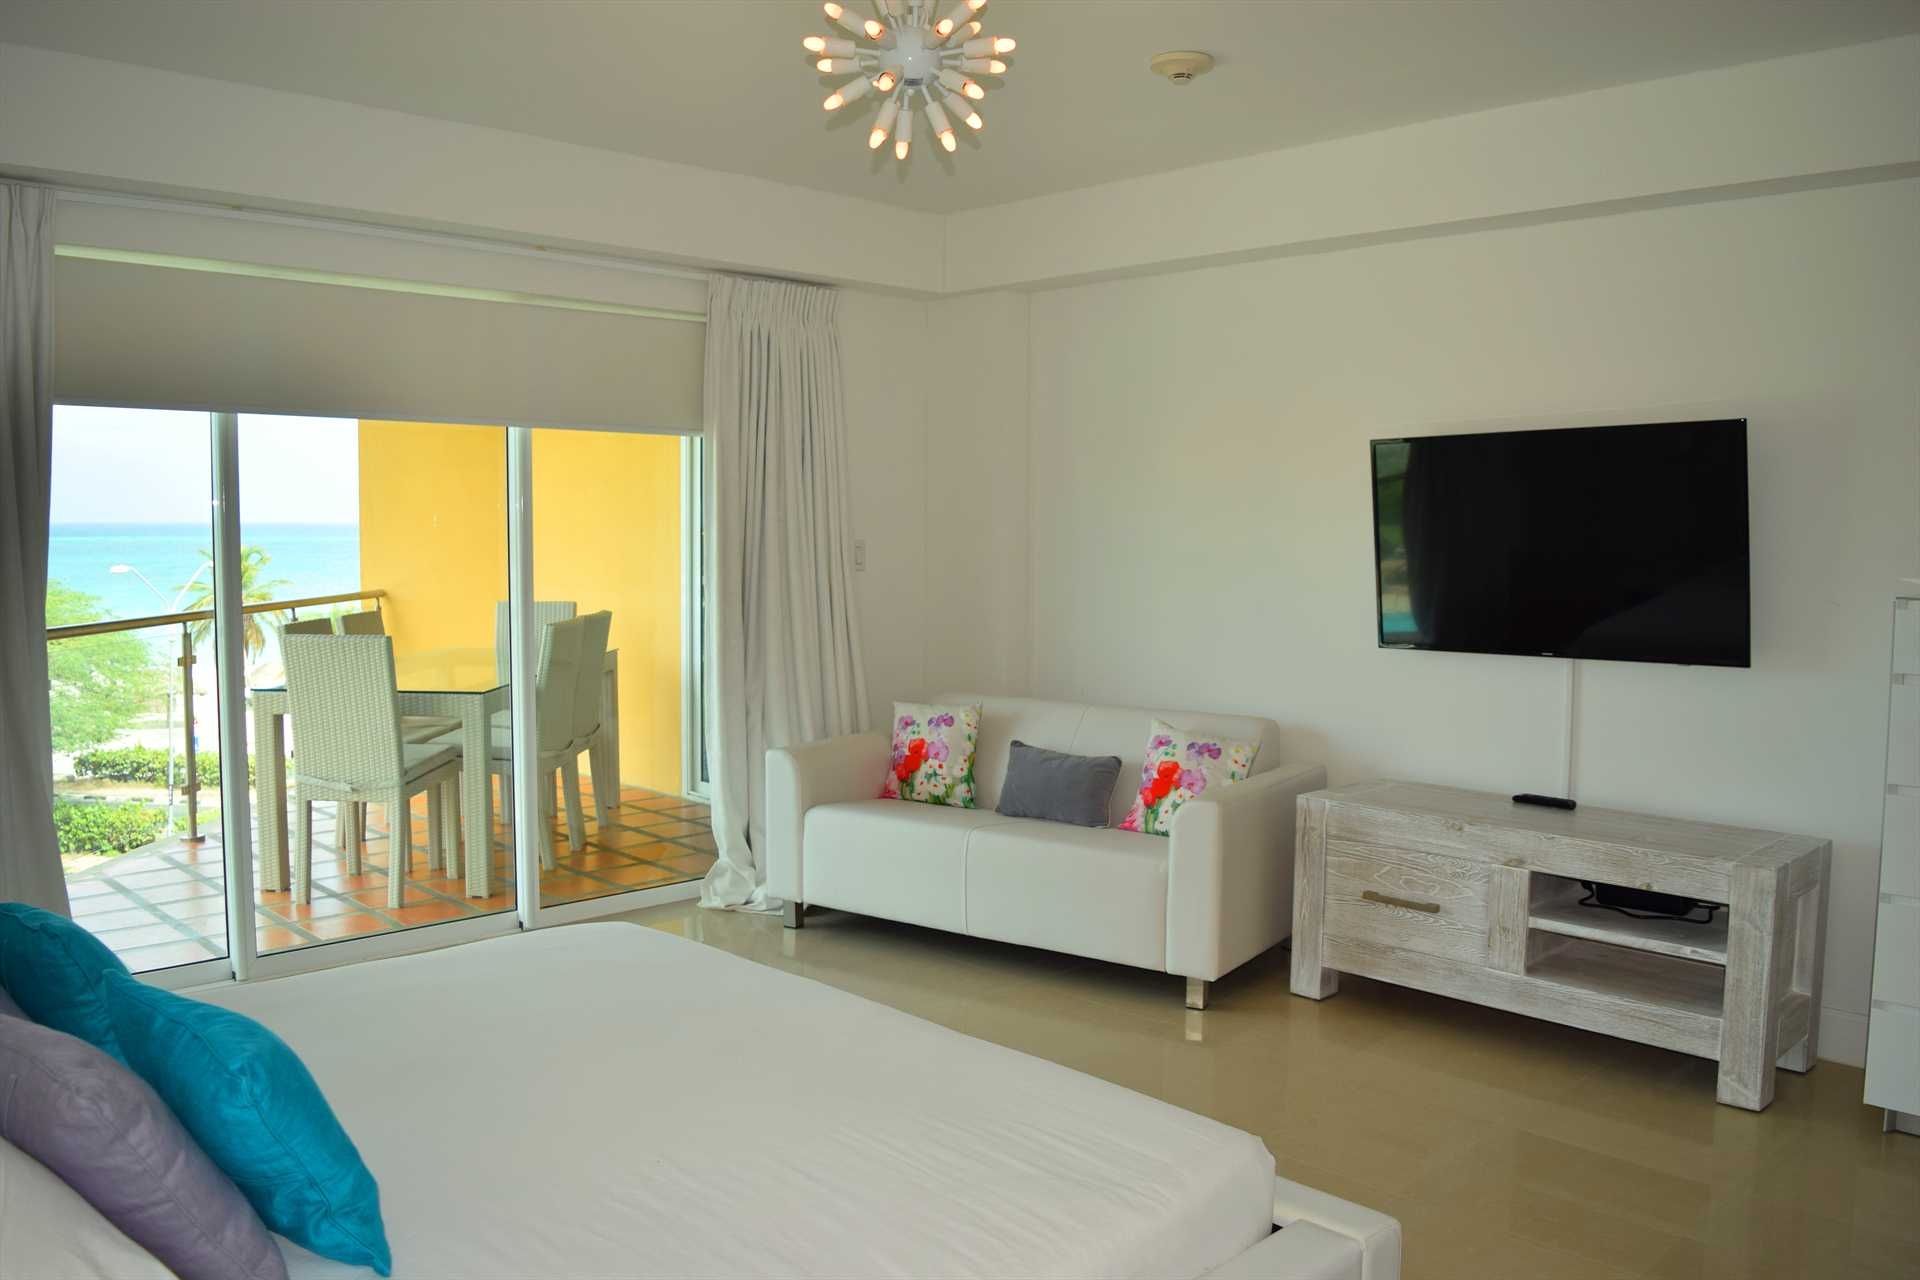 HDTV in master bedroom with sofa and access to balcony